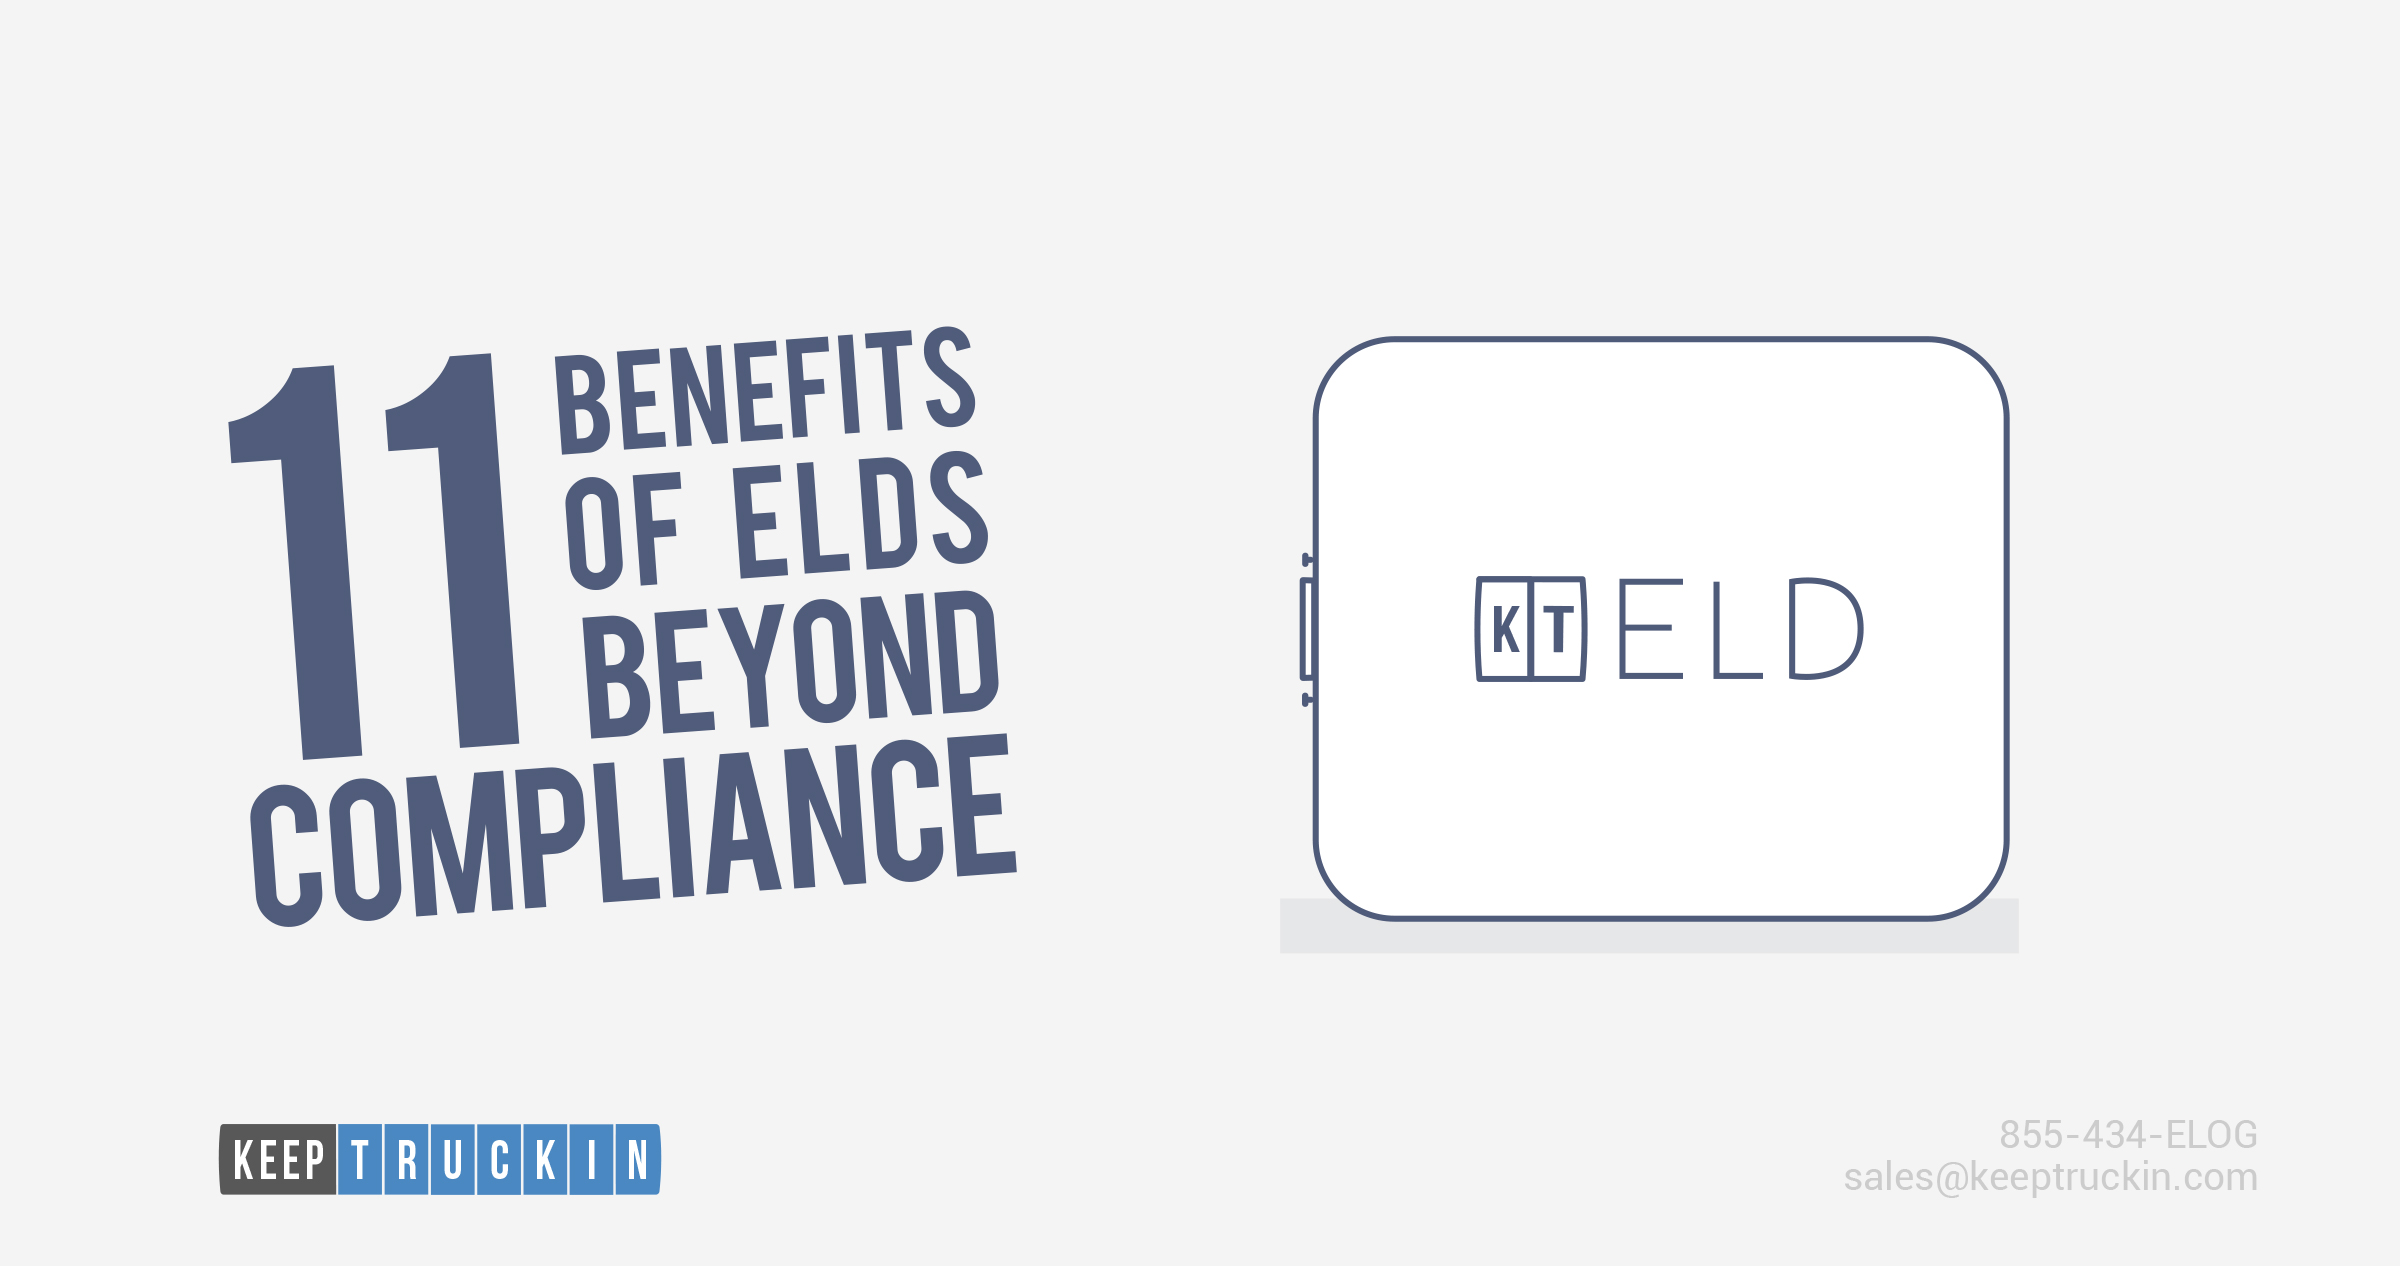 11 Benefits of ELDs Beyond Compliance